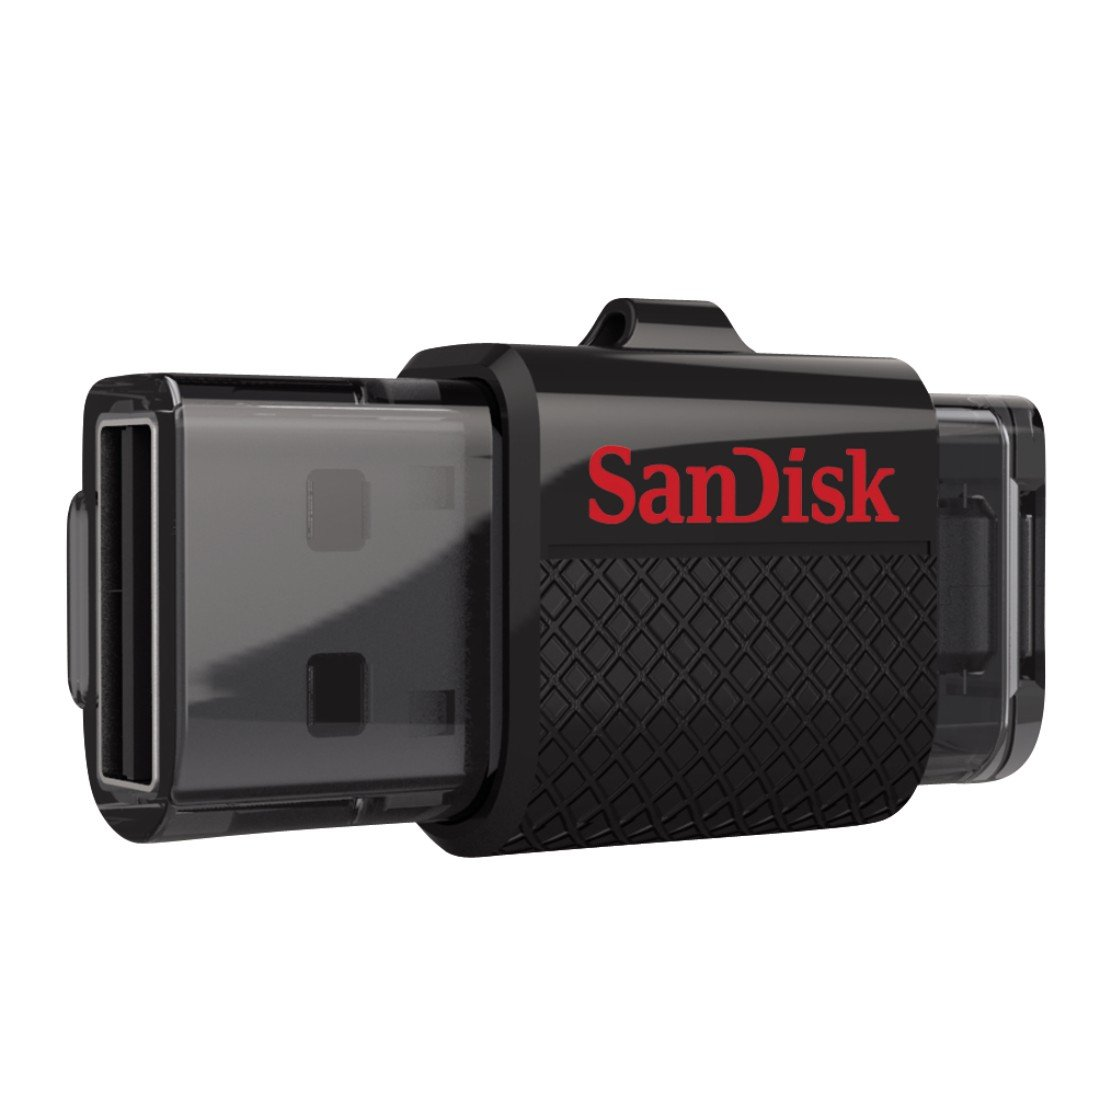 SanDisk Ultra 32GB Micro USB 2.0 OTG Flash Drive For Android Smartphone/Tablet With App- SDDD-032G-G46 by SanDisk (Image #5)